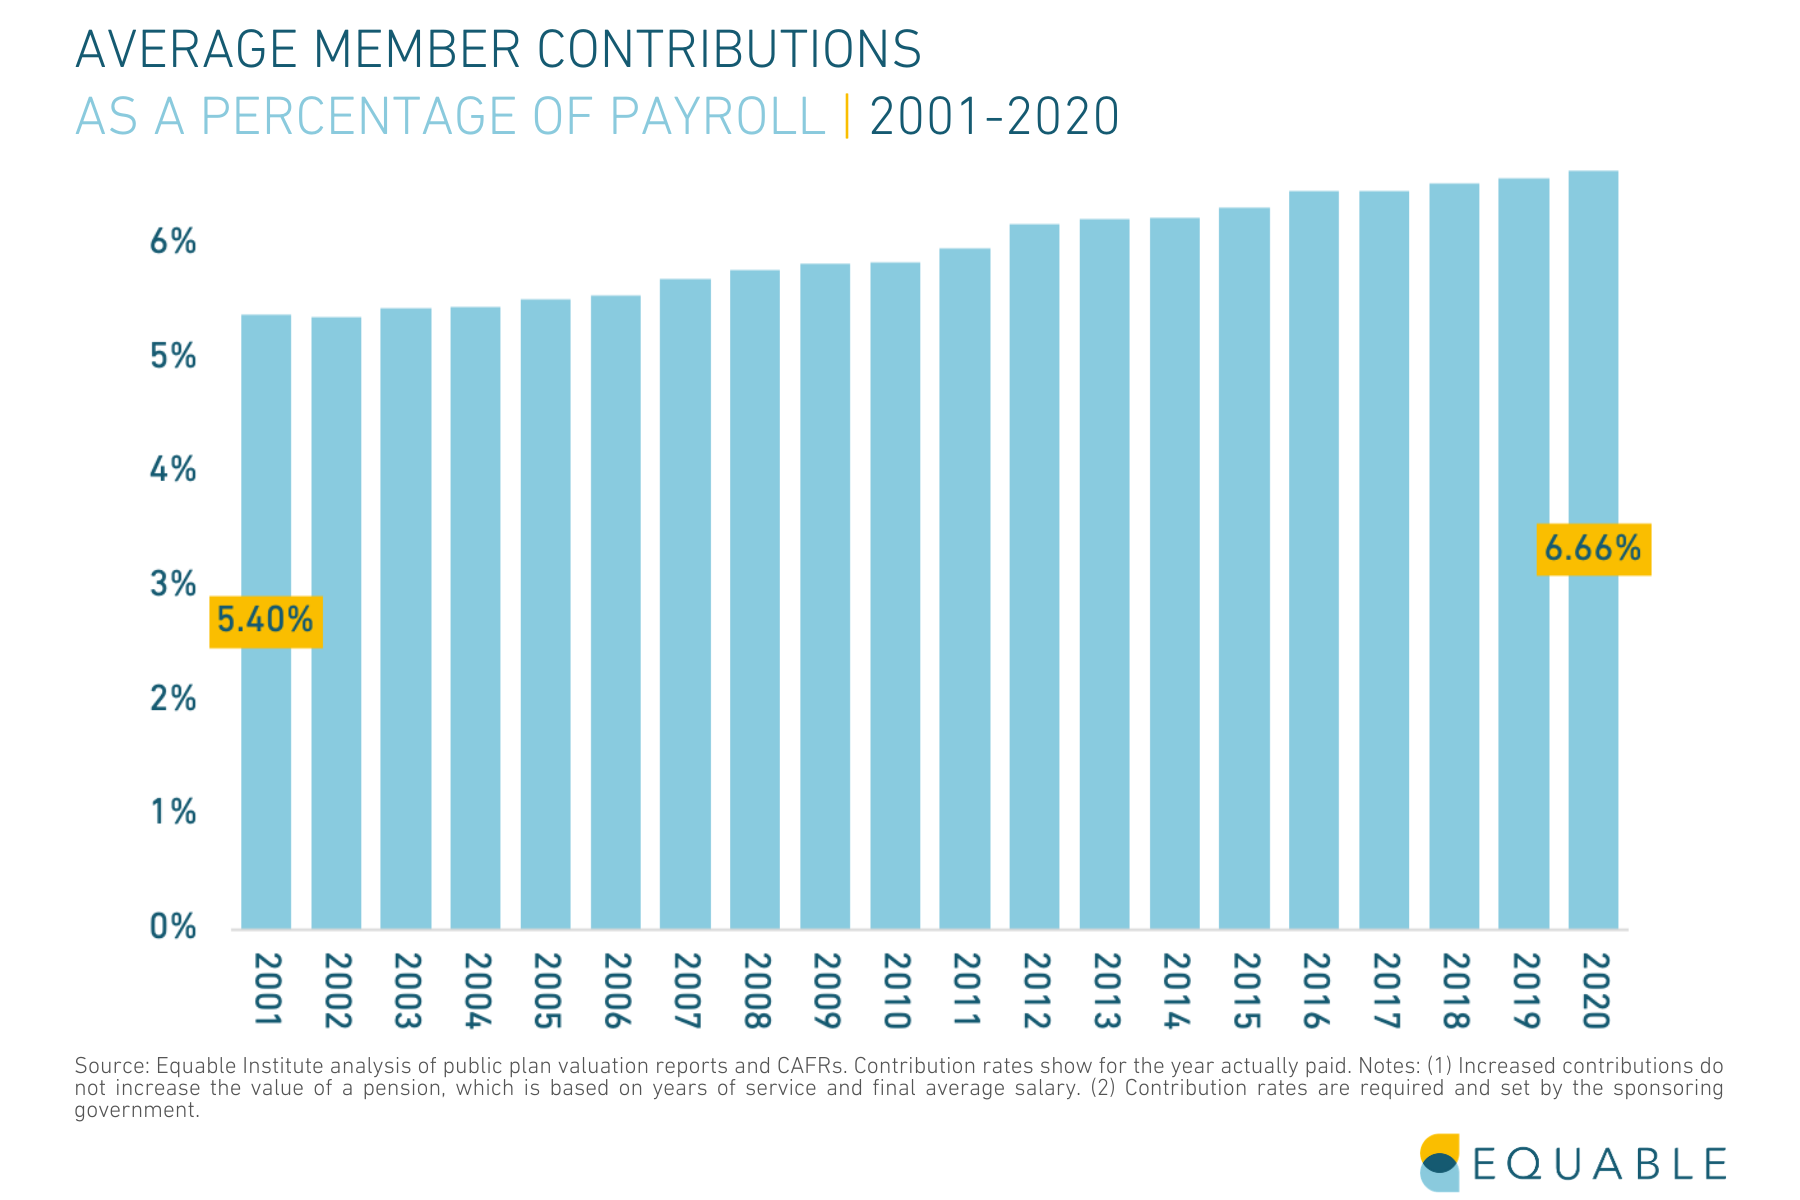 Average Member Contributions for Statewide Pension Plans 2001 - 2020